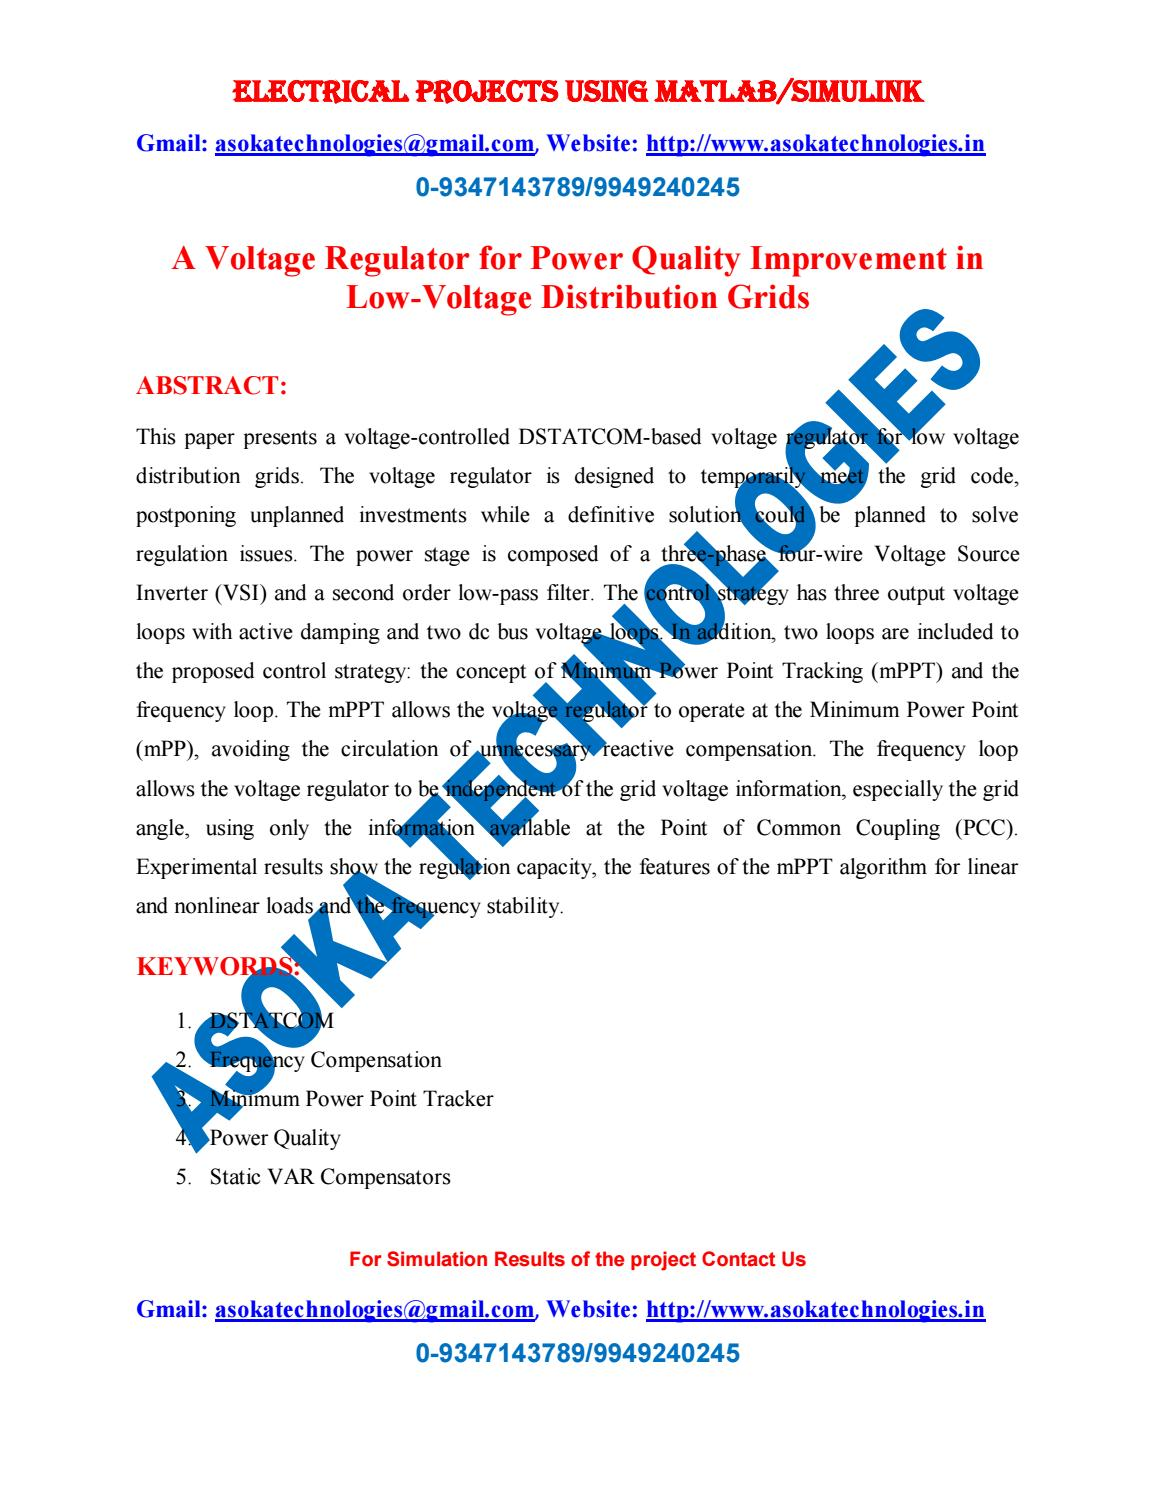 A voltage regulator for power quality improvement in low voltage